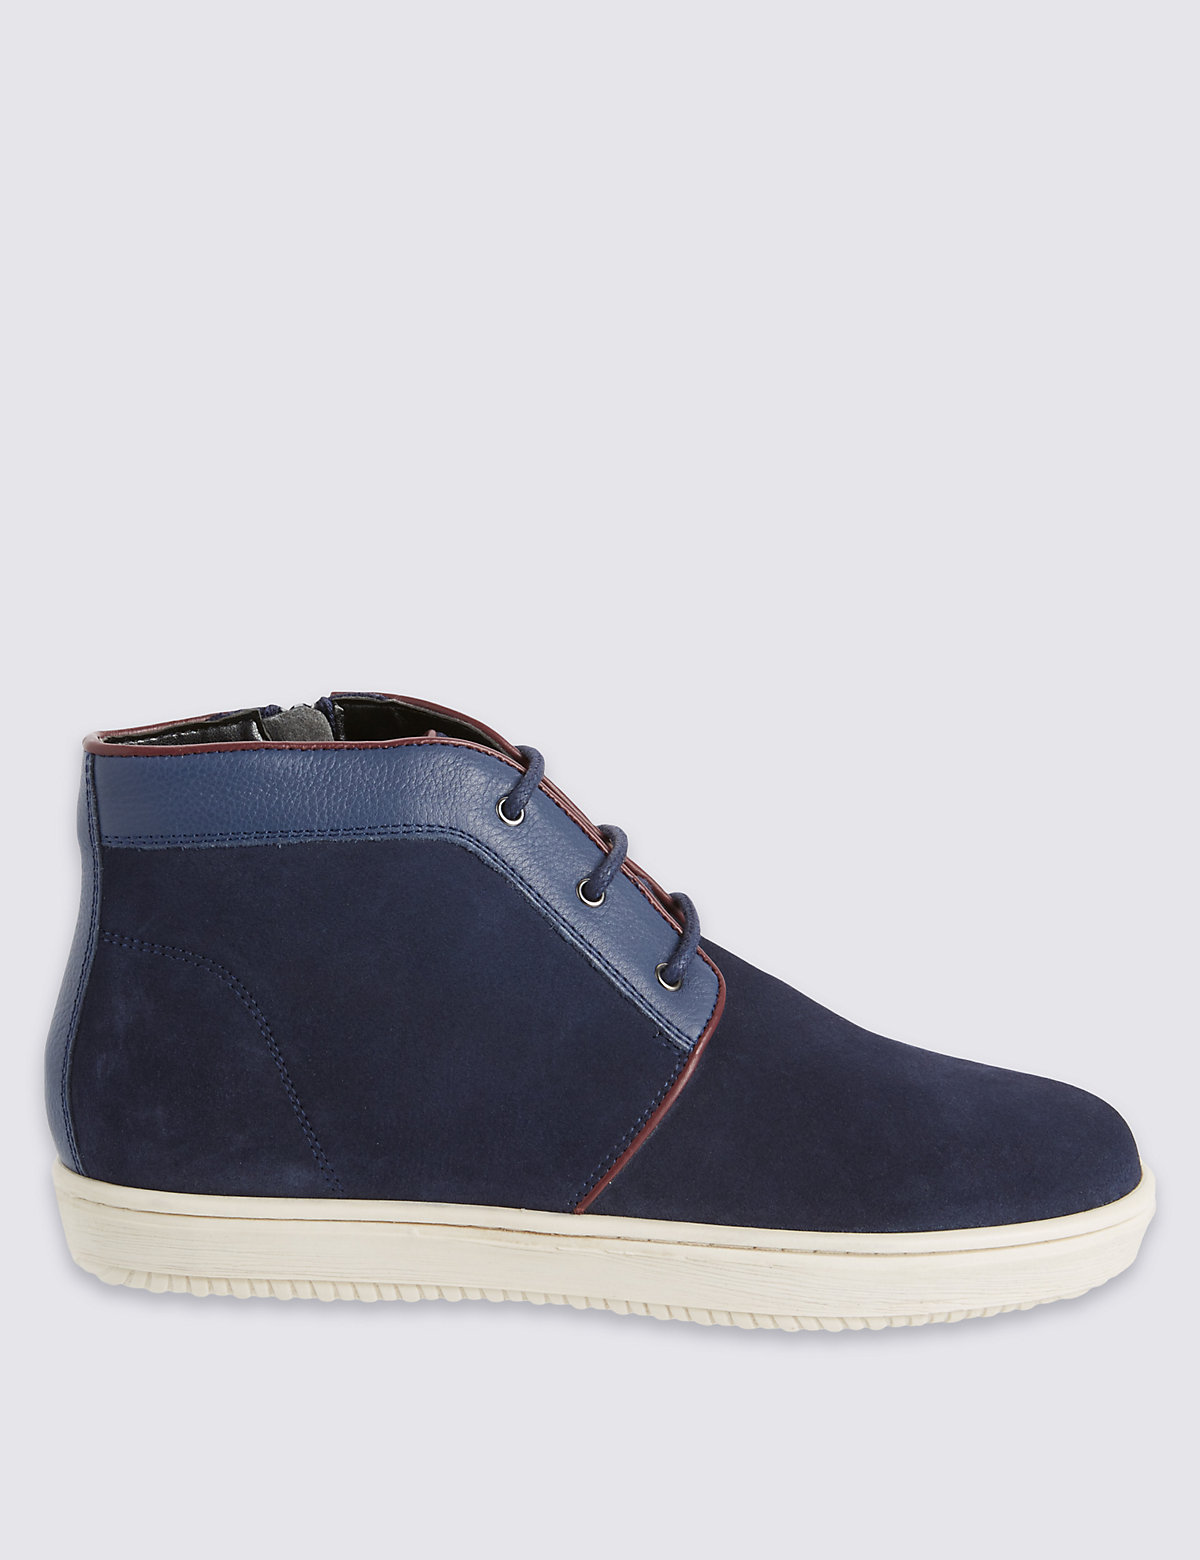 Kids Leather Laceup Chukka Boots